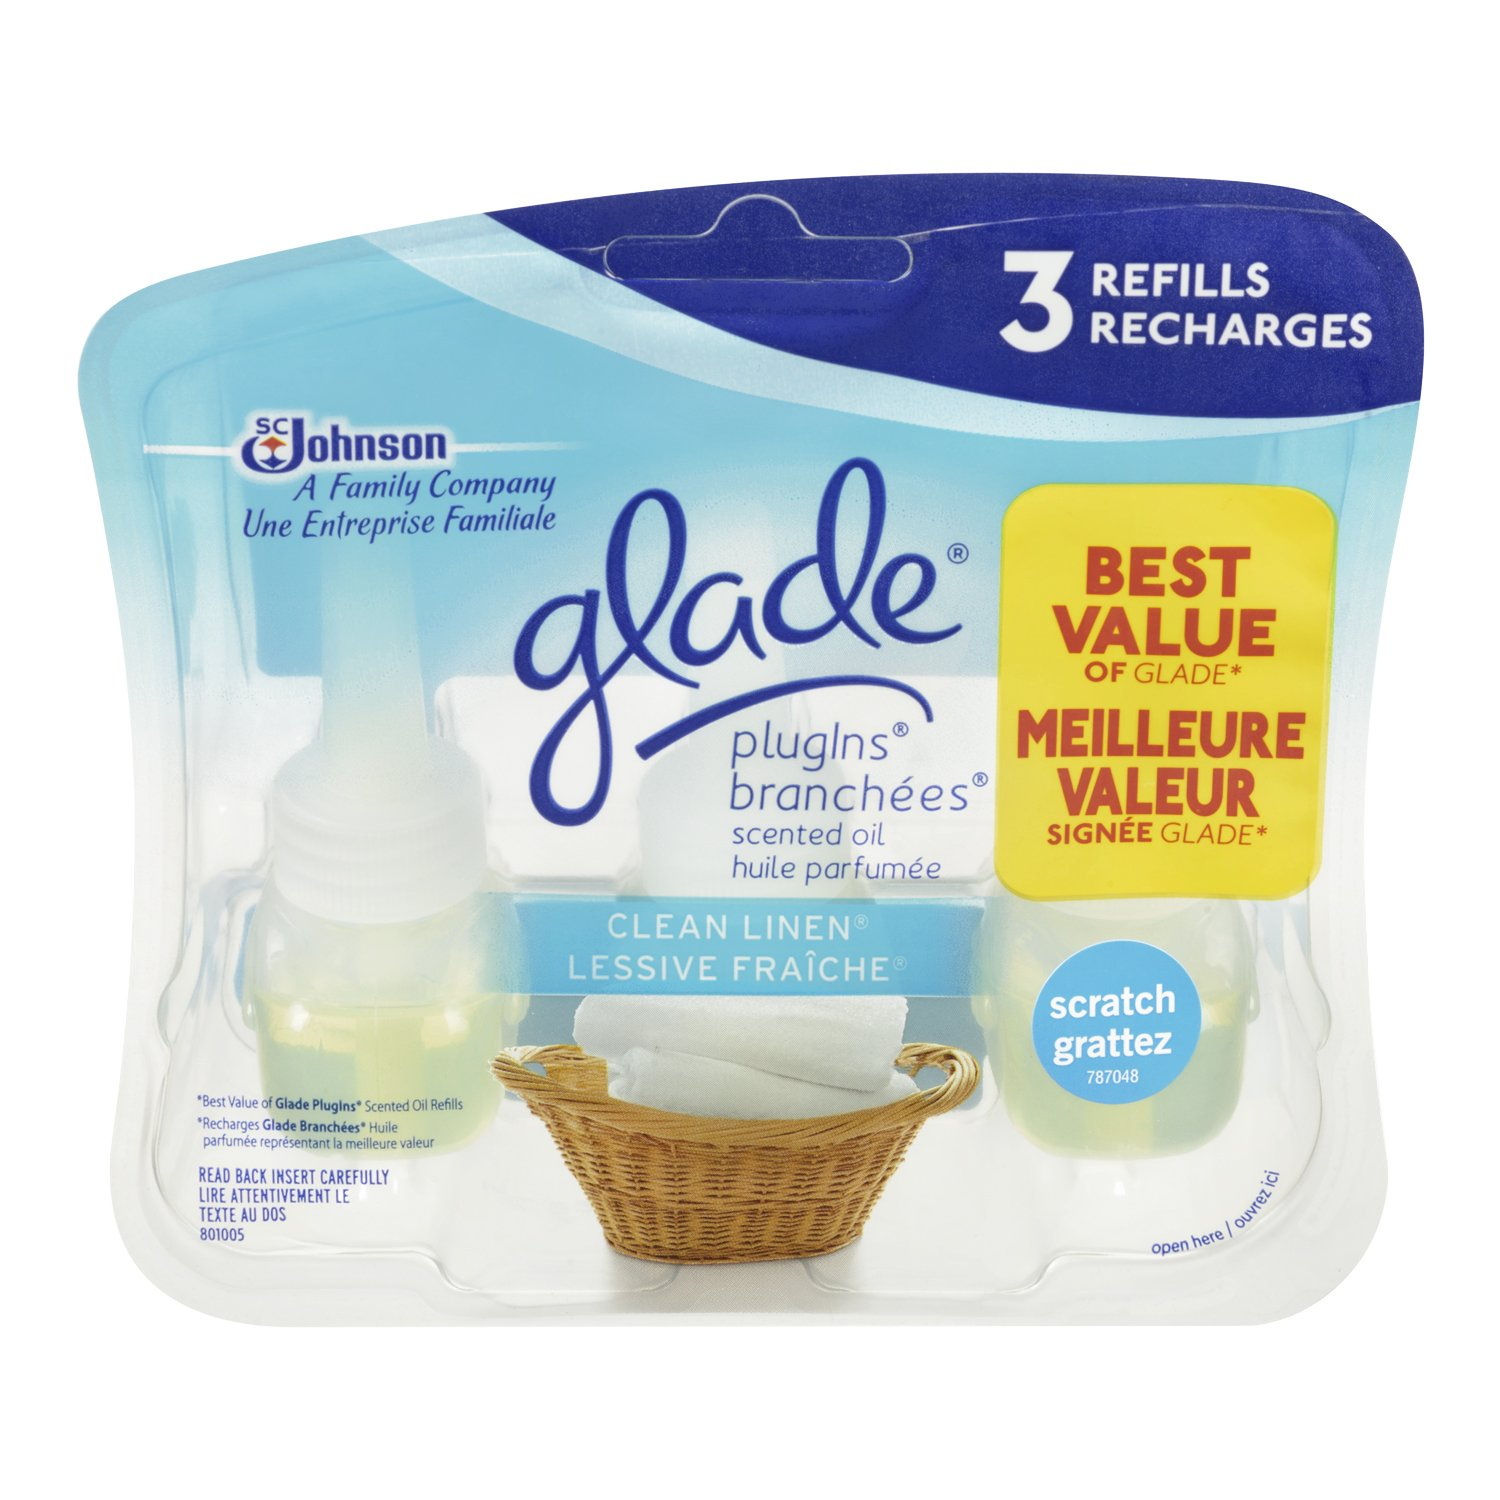 Glade Plugins Scented Oil 3-Pack Refill VP, Clean Linen